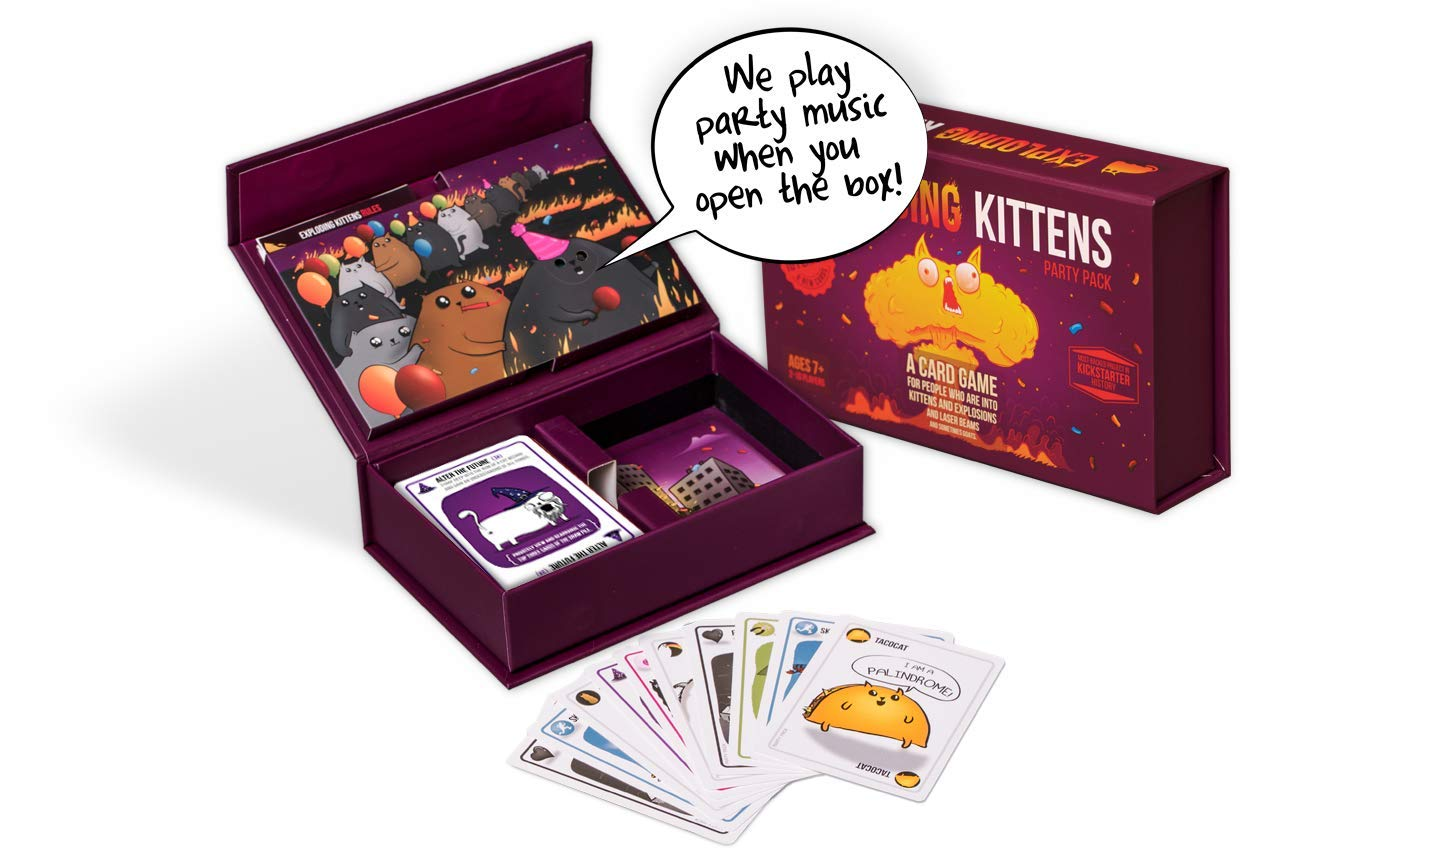 Exploding Kittens Party Pack Game - Play Exploding Kittens with up to 10 Players! by Exploding Kittens LLC (Image #1)